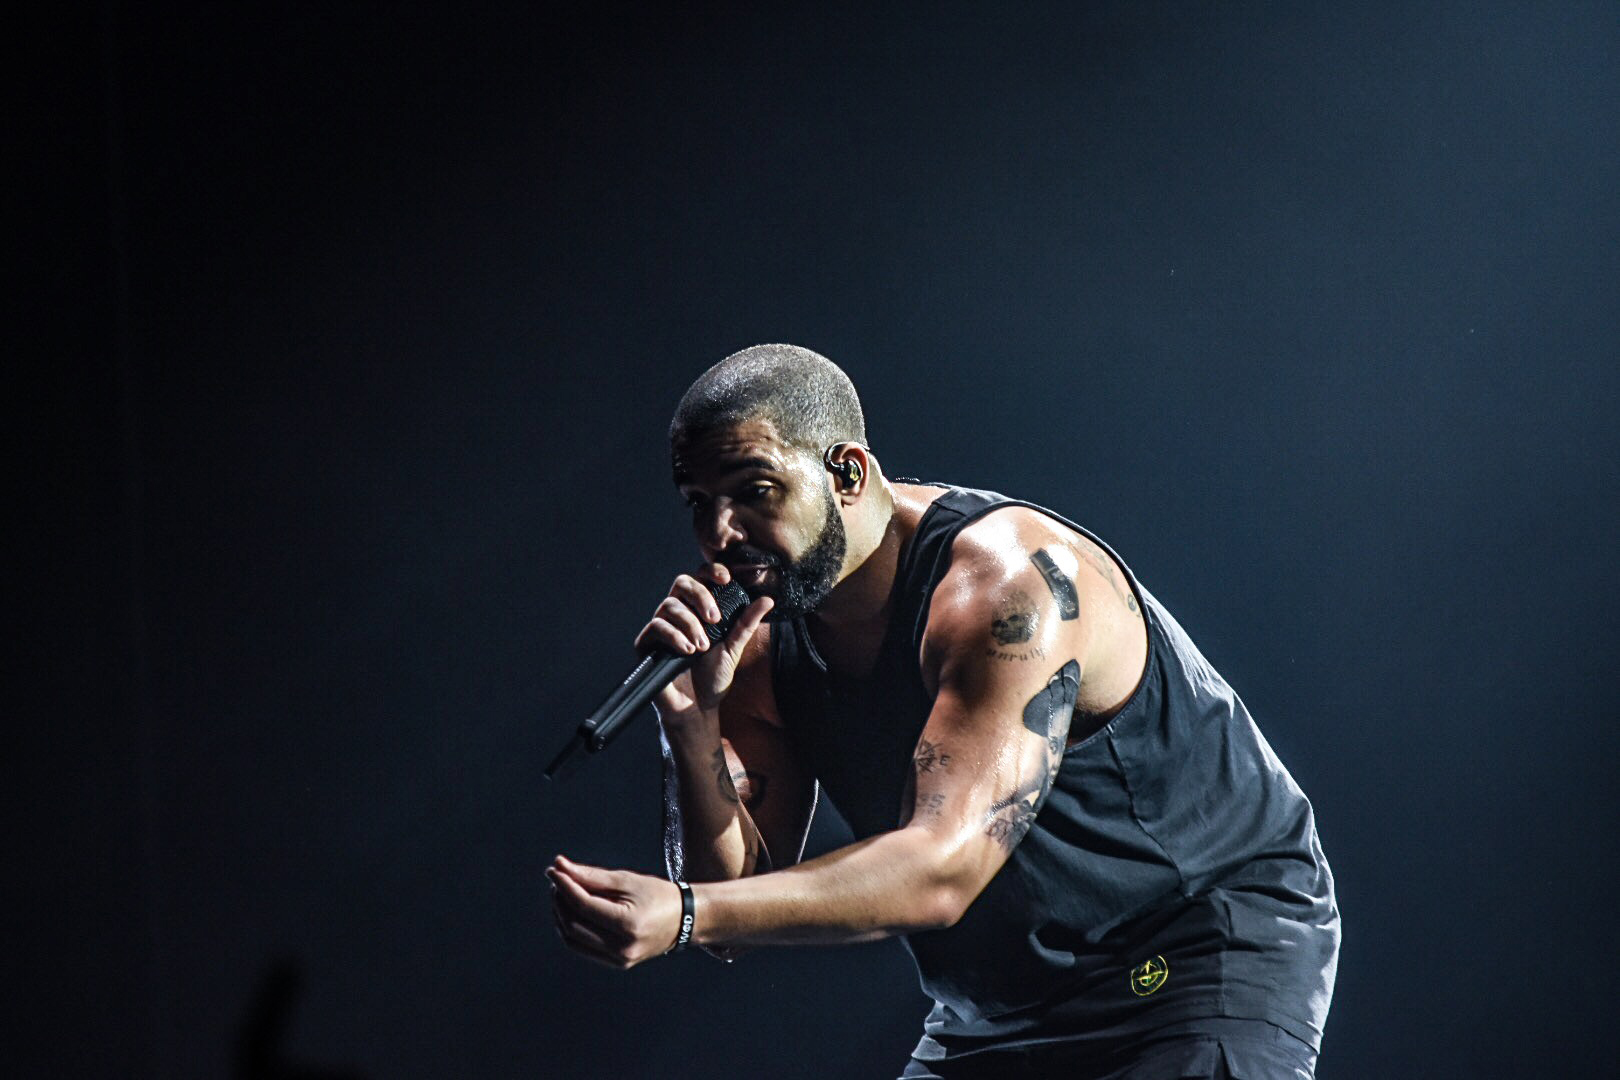 14 - Drake Performs at Glasgow's SSE Hydro as part of The Boy Meets Word Tour - 23-03-17 - Picture By - Calum Buchan Photography.jpg